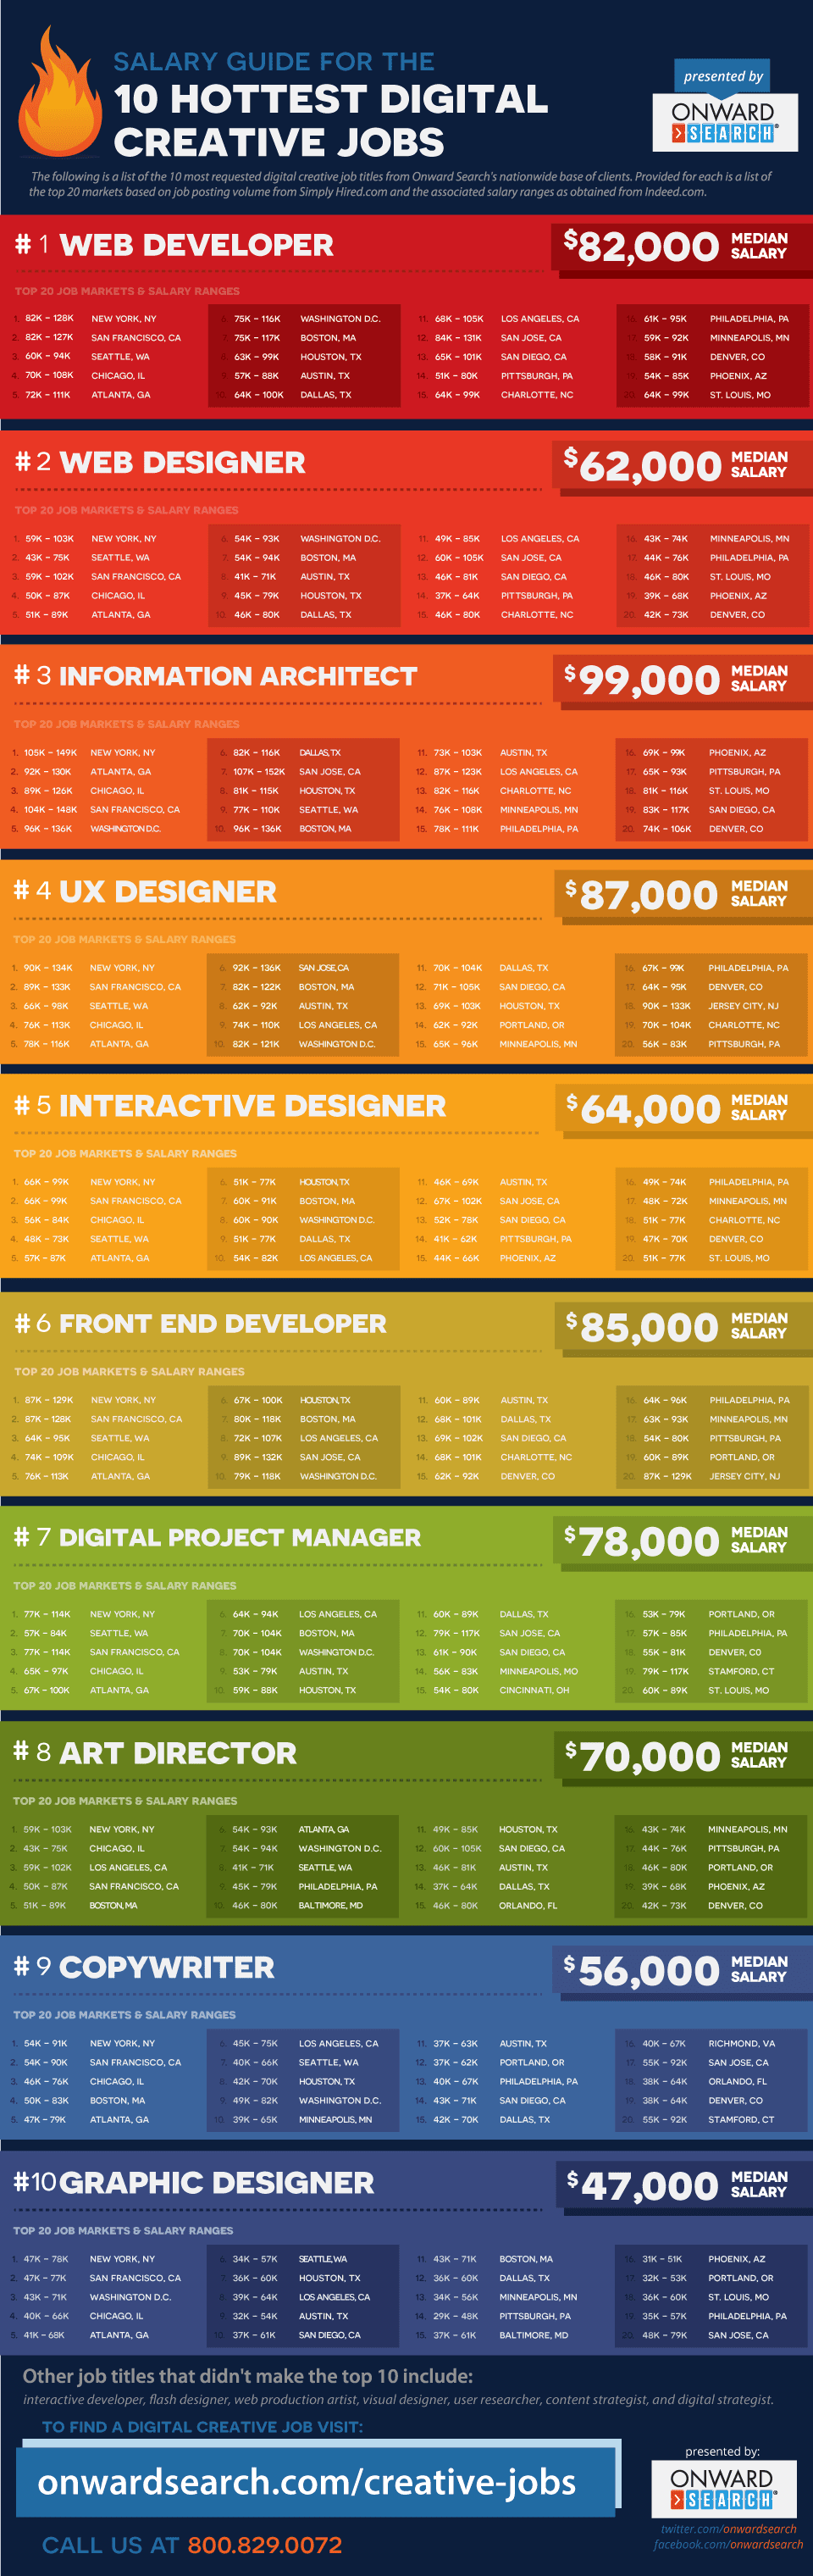 salary guide for the hottest digital creative jobs onward search